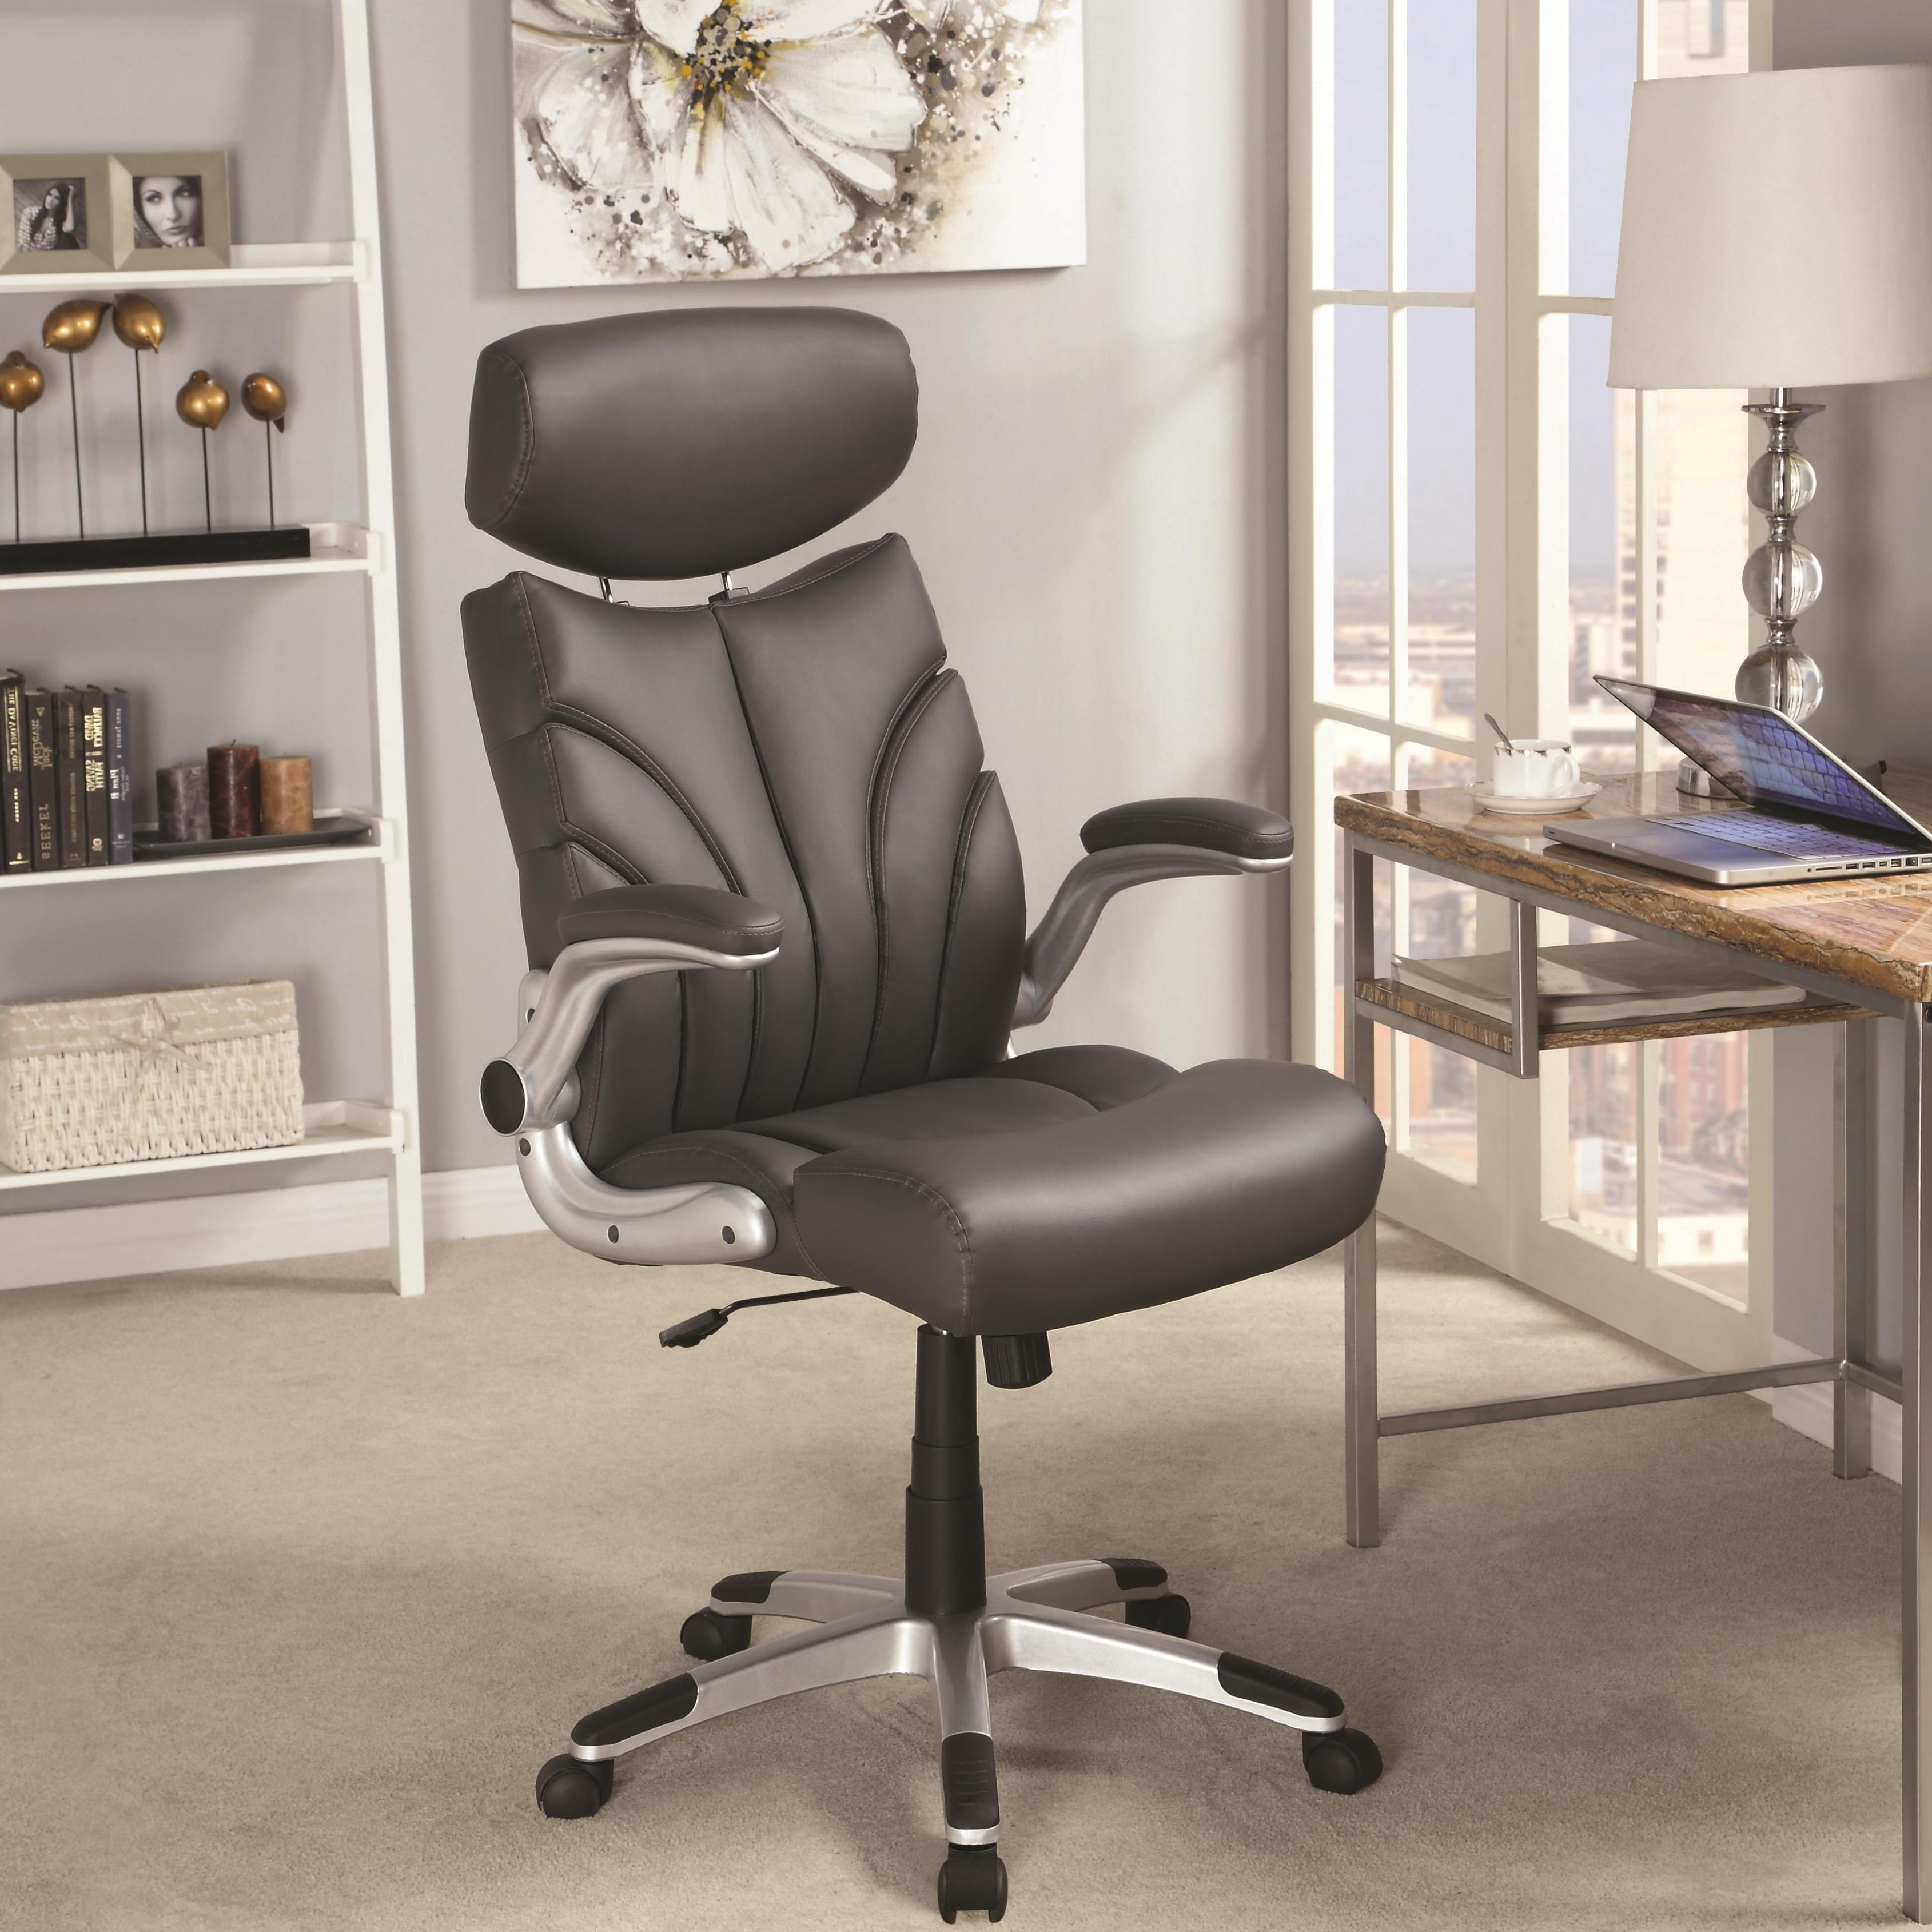 Shop Mercado Contemporary Sleek Design Grey Executive Office Chair with Head Rest - Free Shipping Today - Overstock.com - 11586455 & Shop Mercado Contemporary Sleek Design Grey Executive Office Chair ...